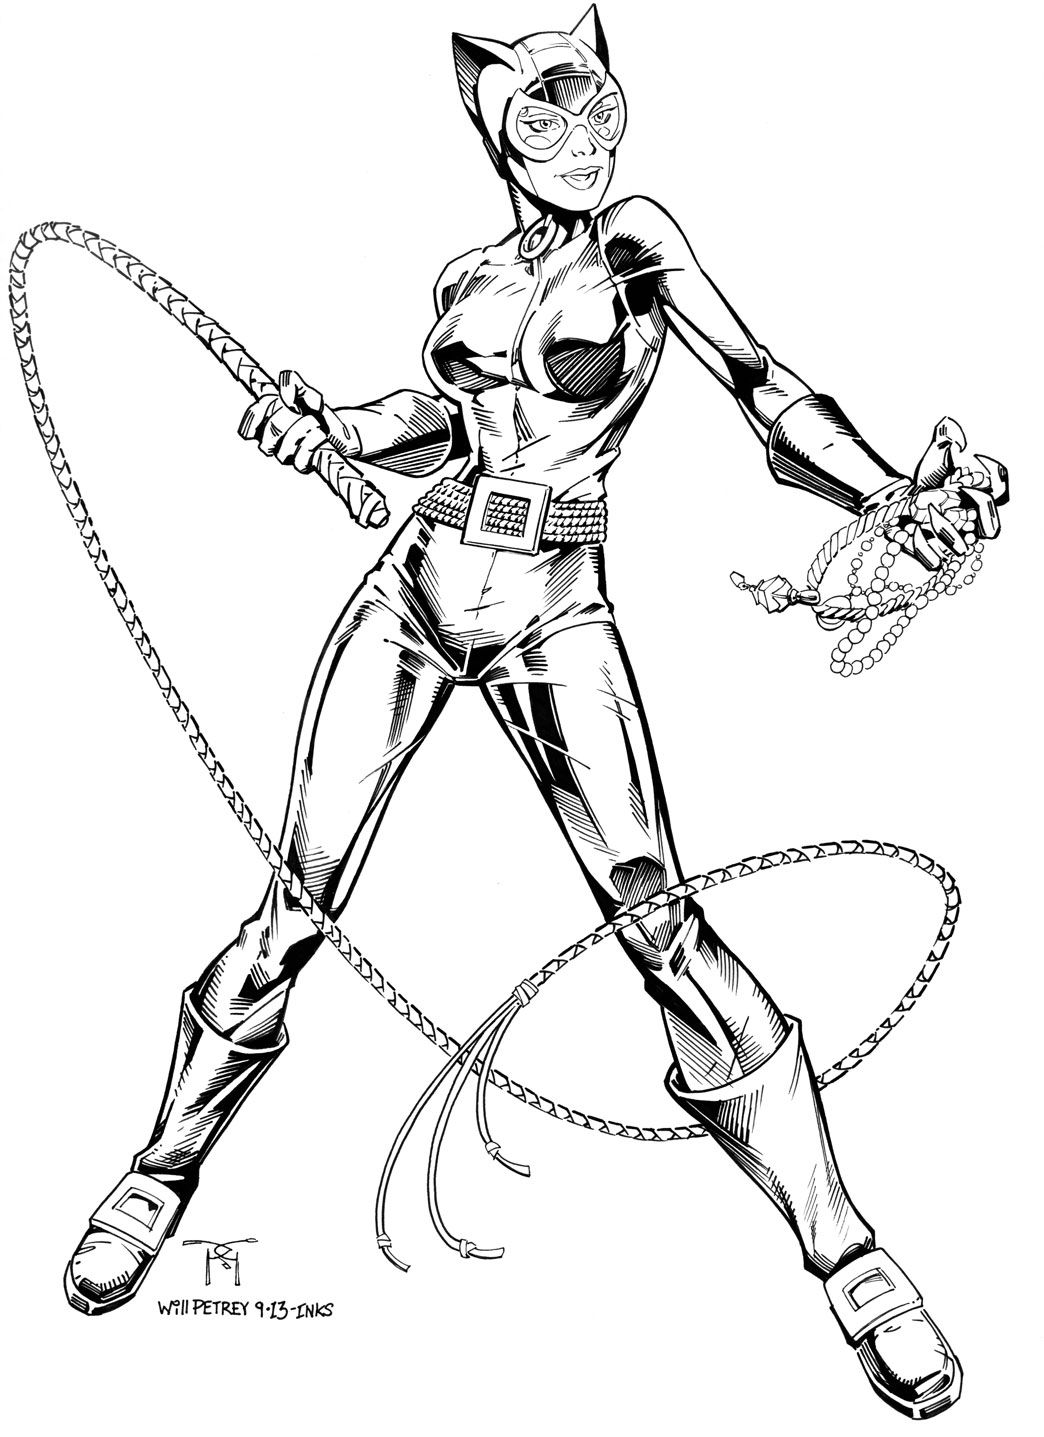 Catwoman by Will Petrey | Catwoman | Pinterest